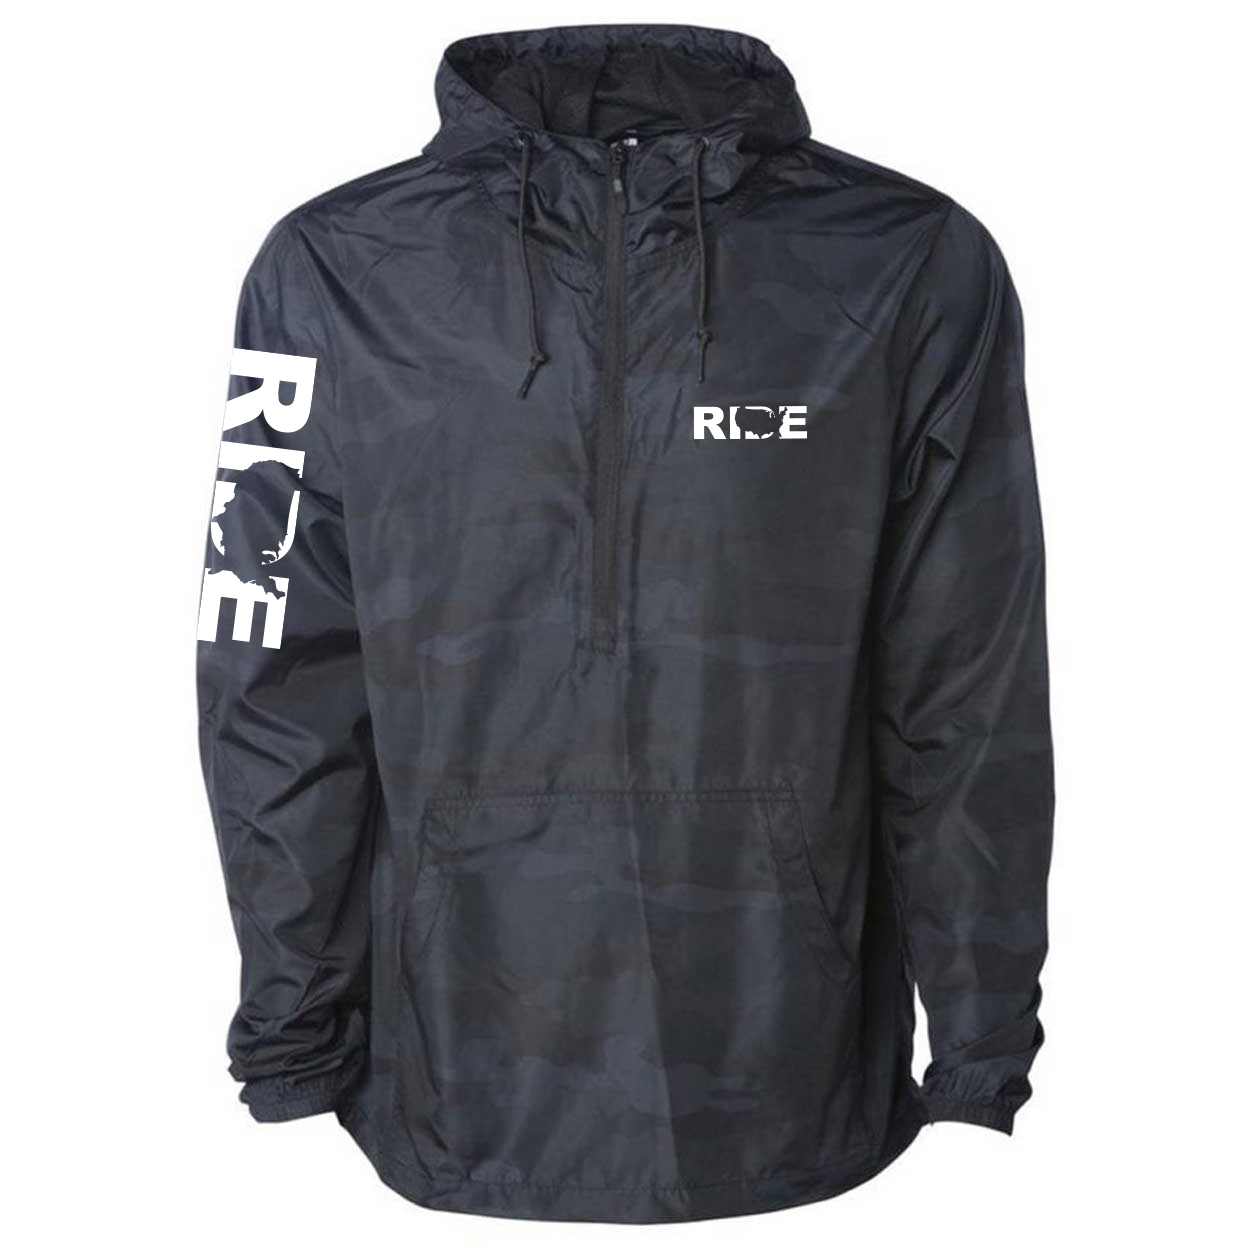 Ride United States Classic Lightweight Pullover Windbreaker Black Camo (White Logo)